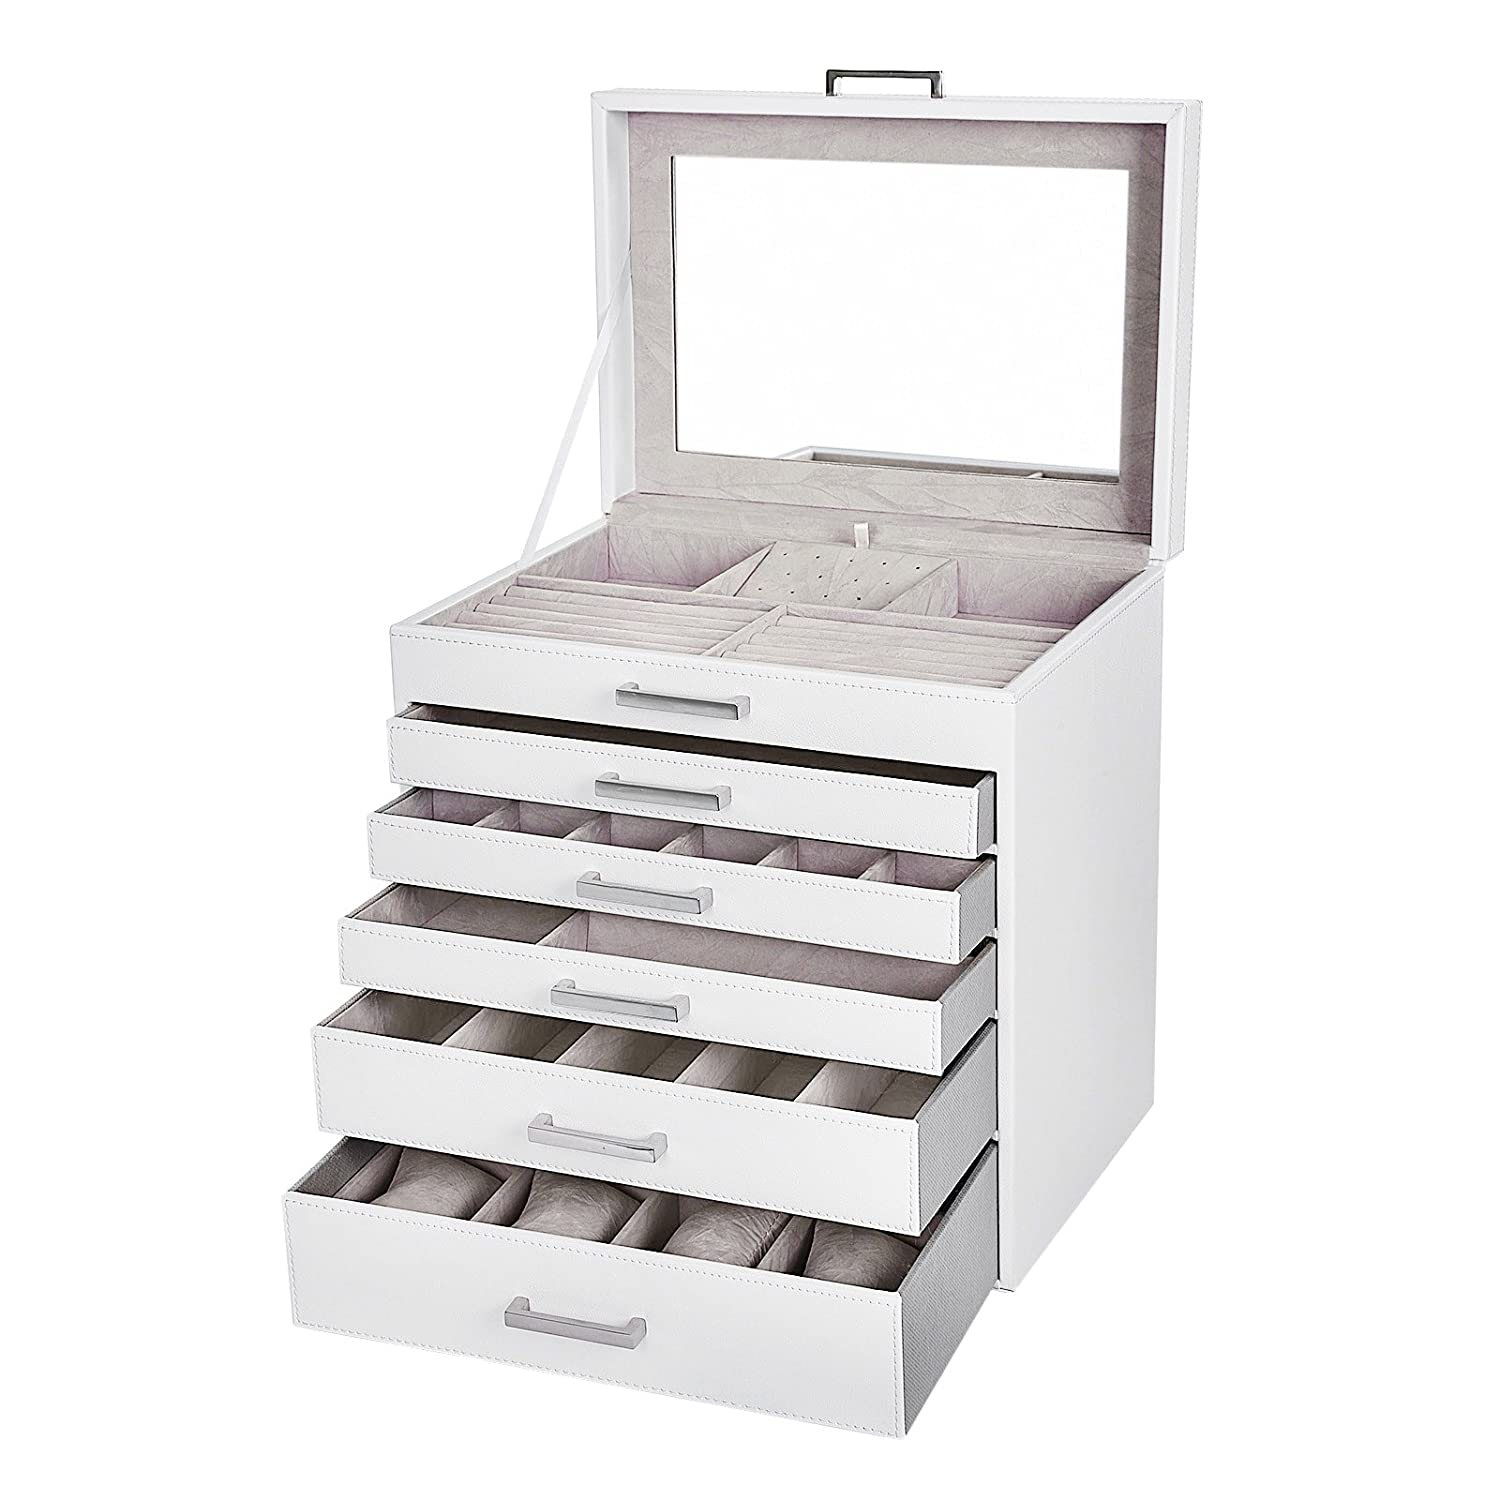 SONGMICS Jewellery Box Organiser,large Jewellery case with 6 Layers with 5 Drawers White JBC138